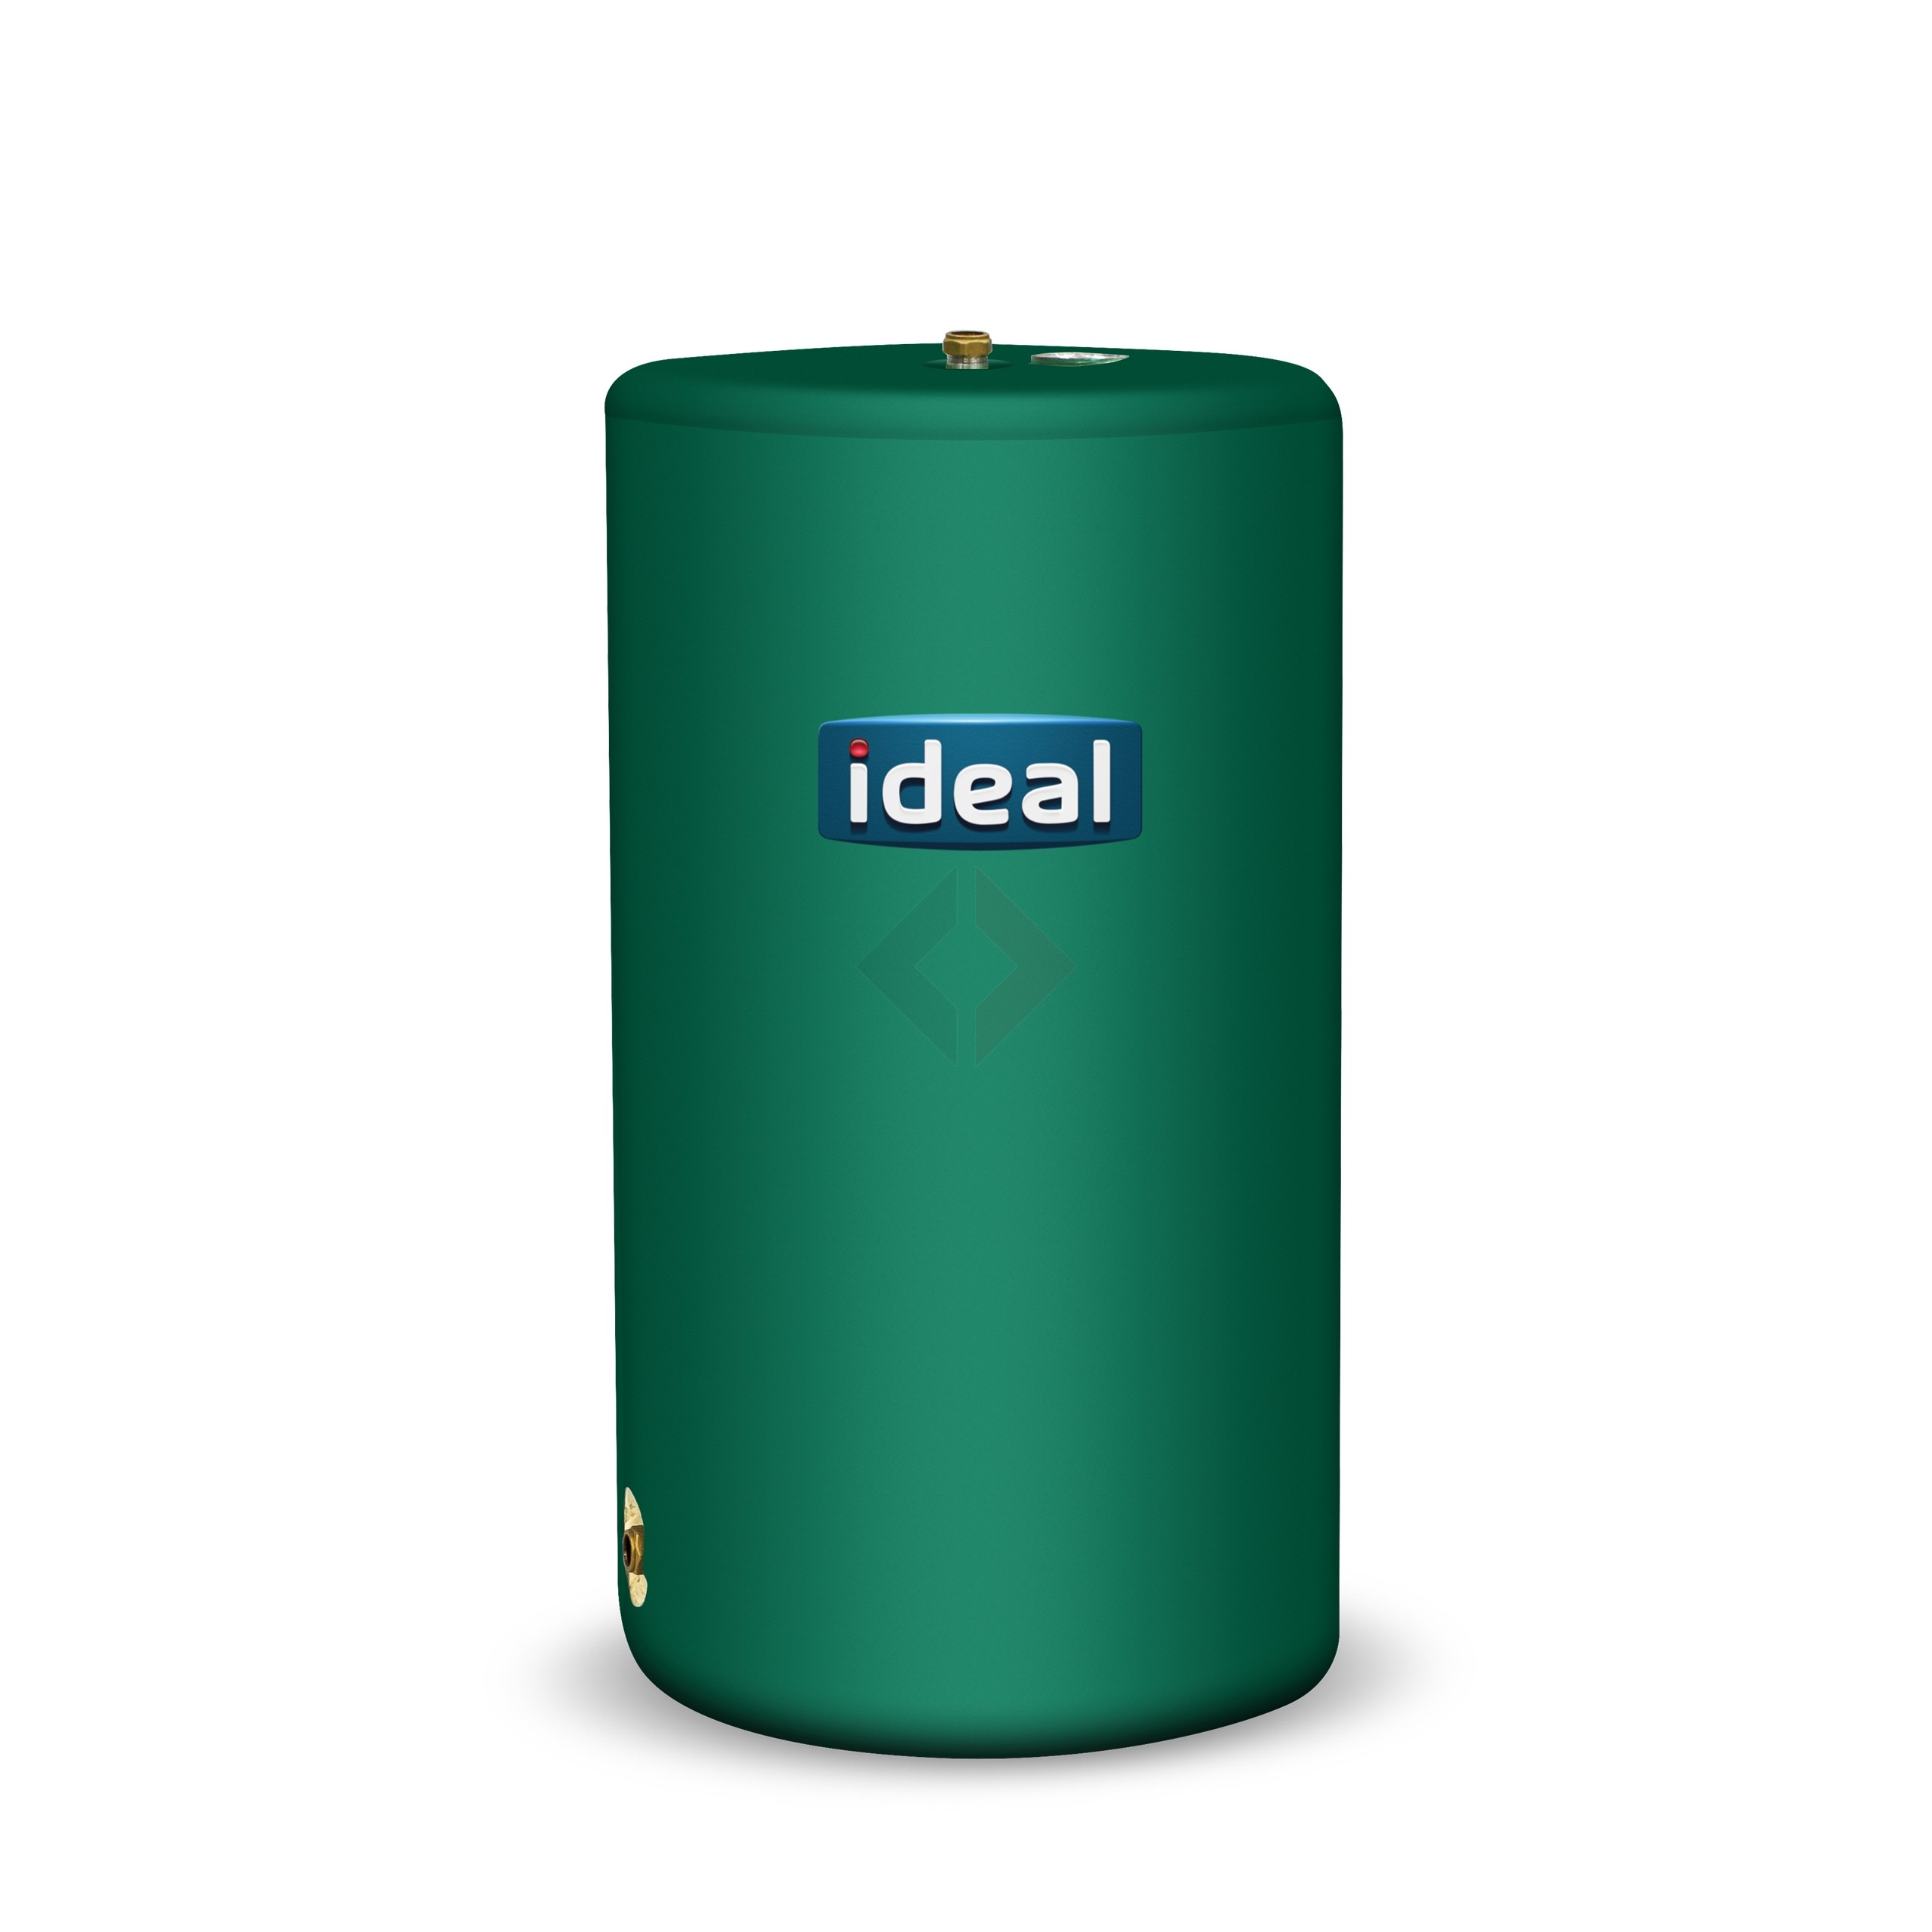 Ideal 900 x 450 Indirect Stainless Steel Vented Cylinder